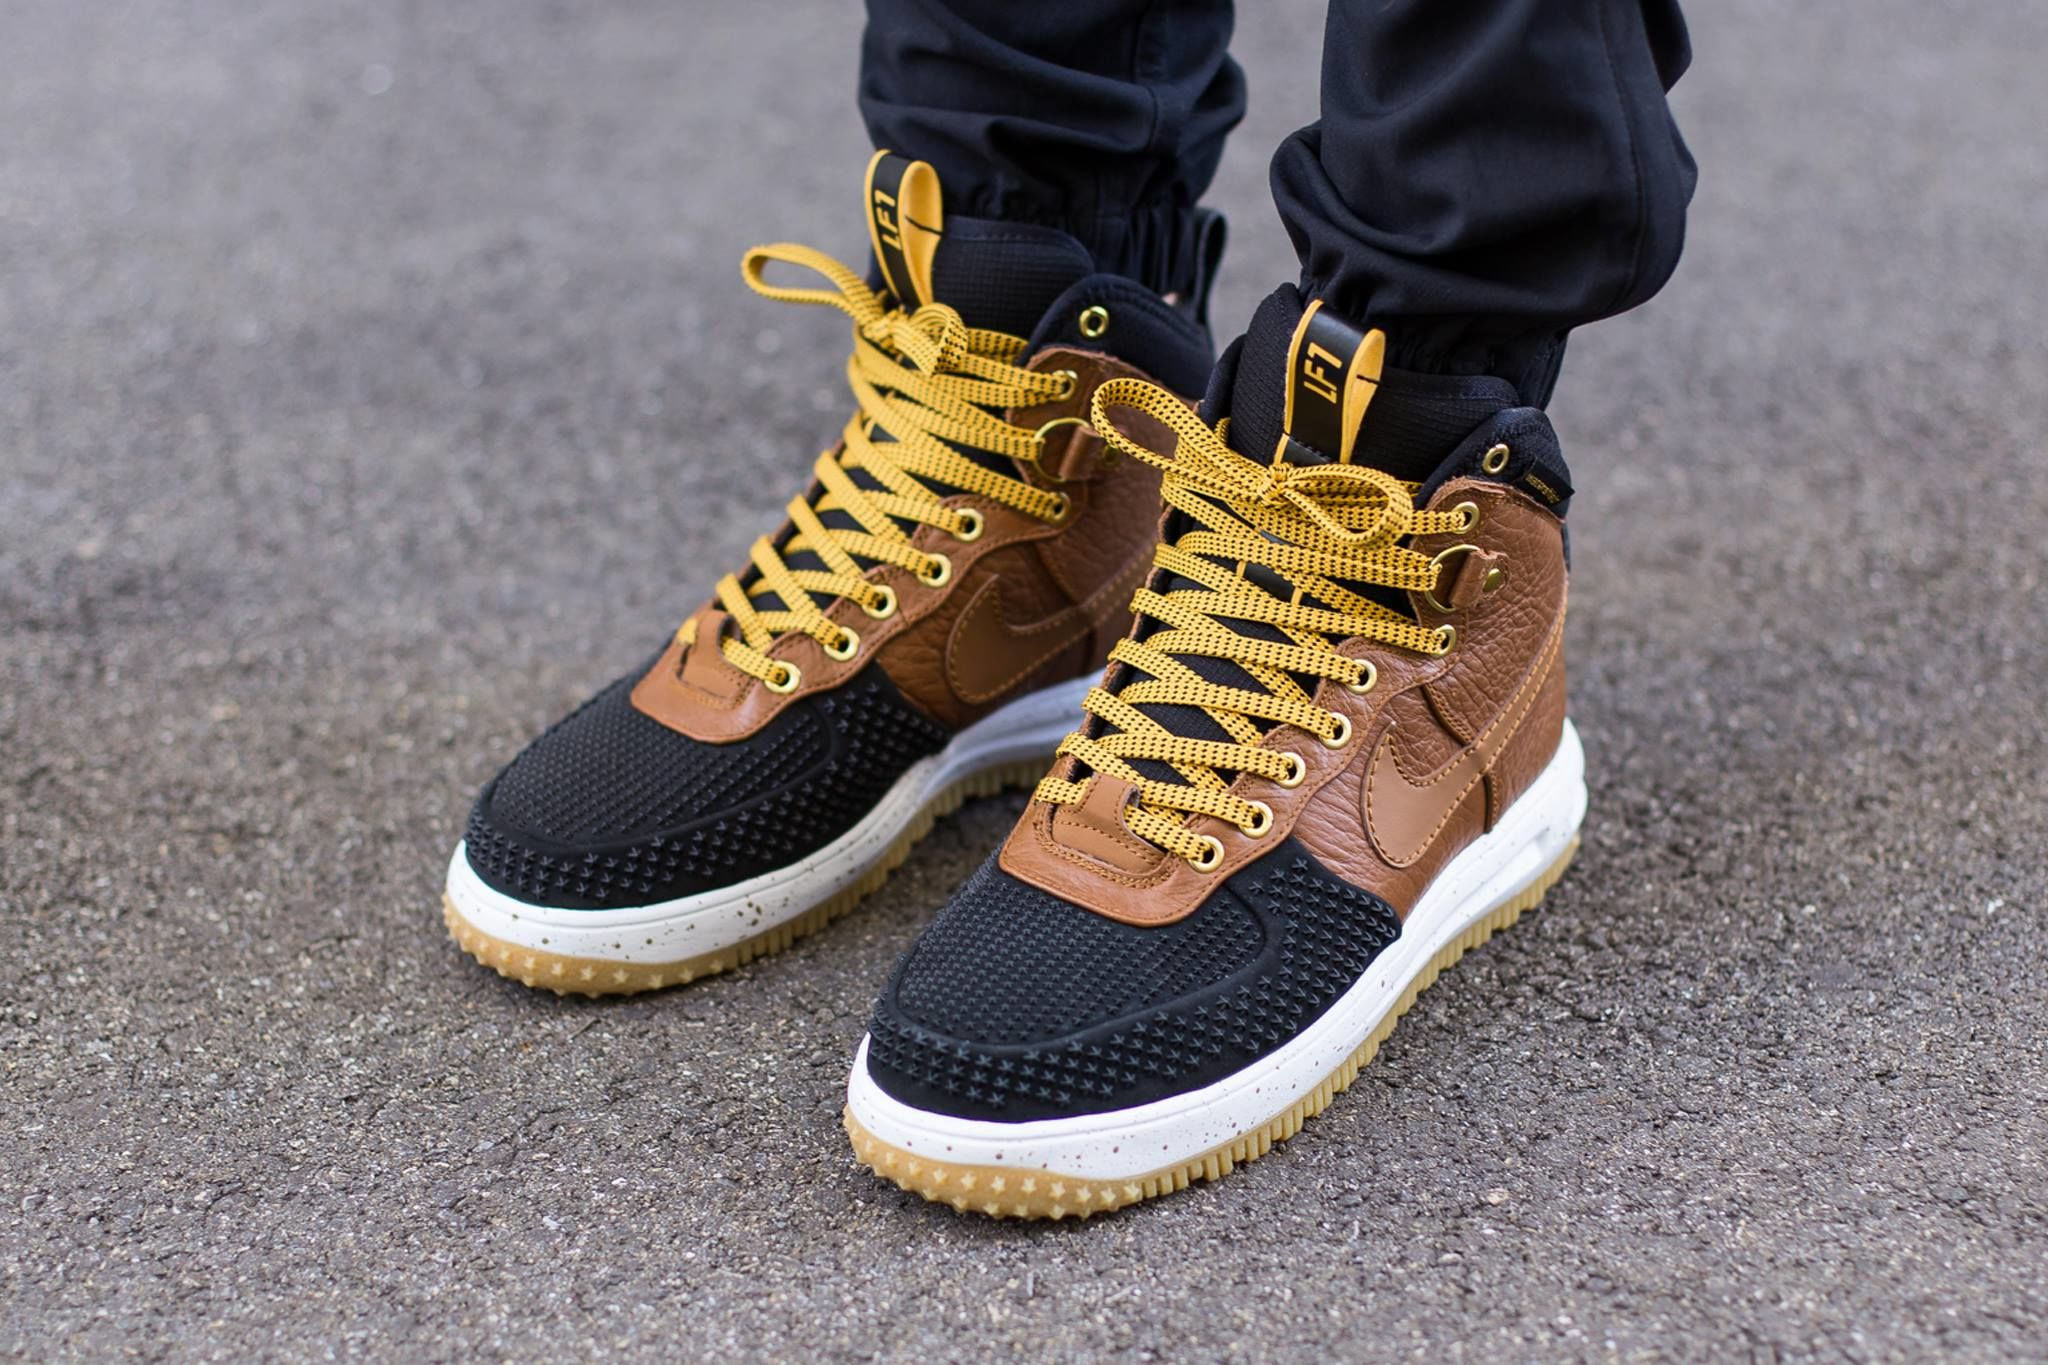 0_1479645138173_Nike-Lunar-Force-1-Duckboot-11.jpg